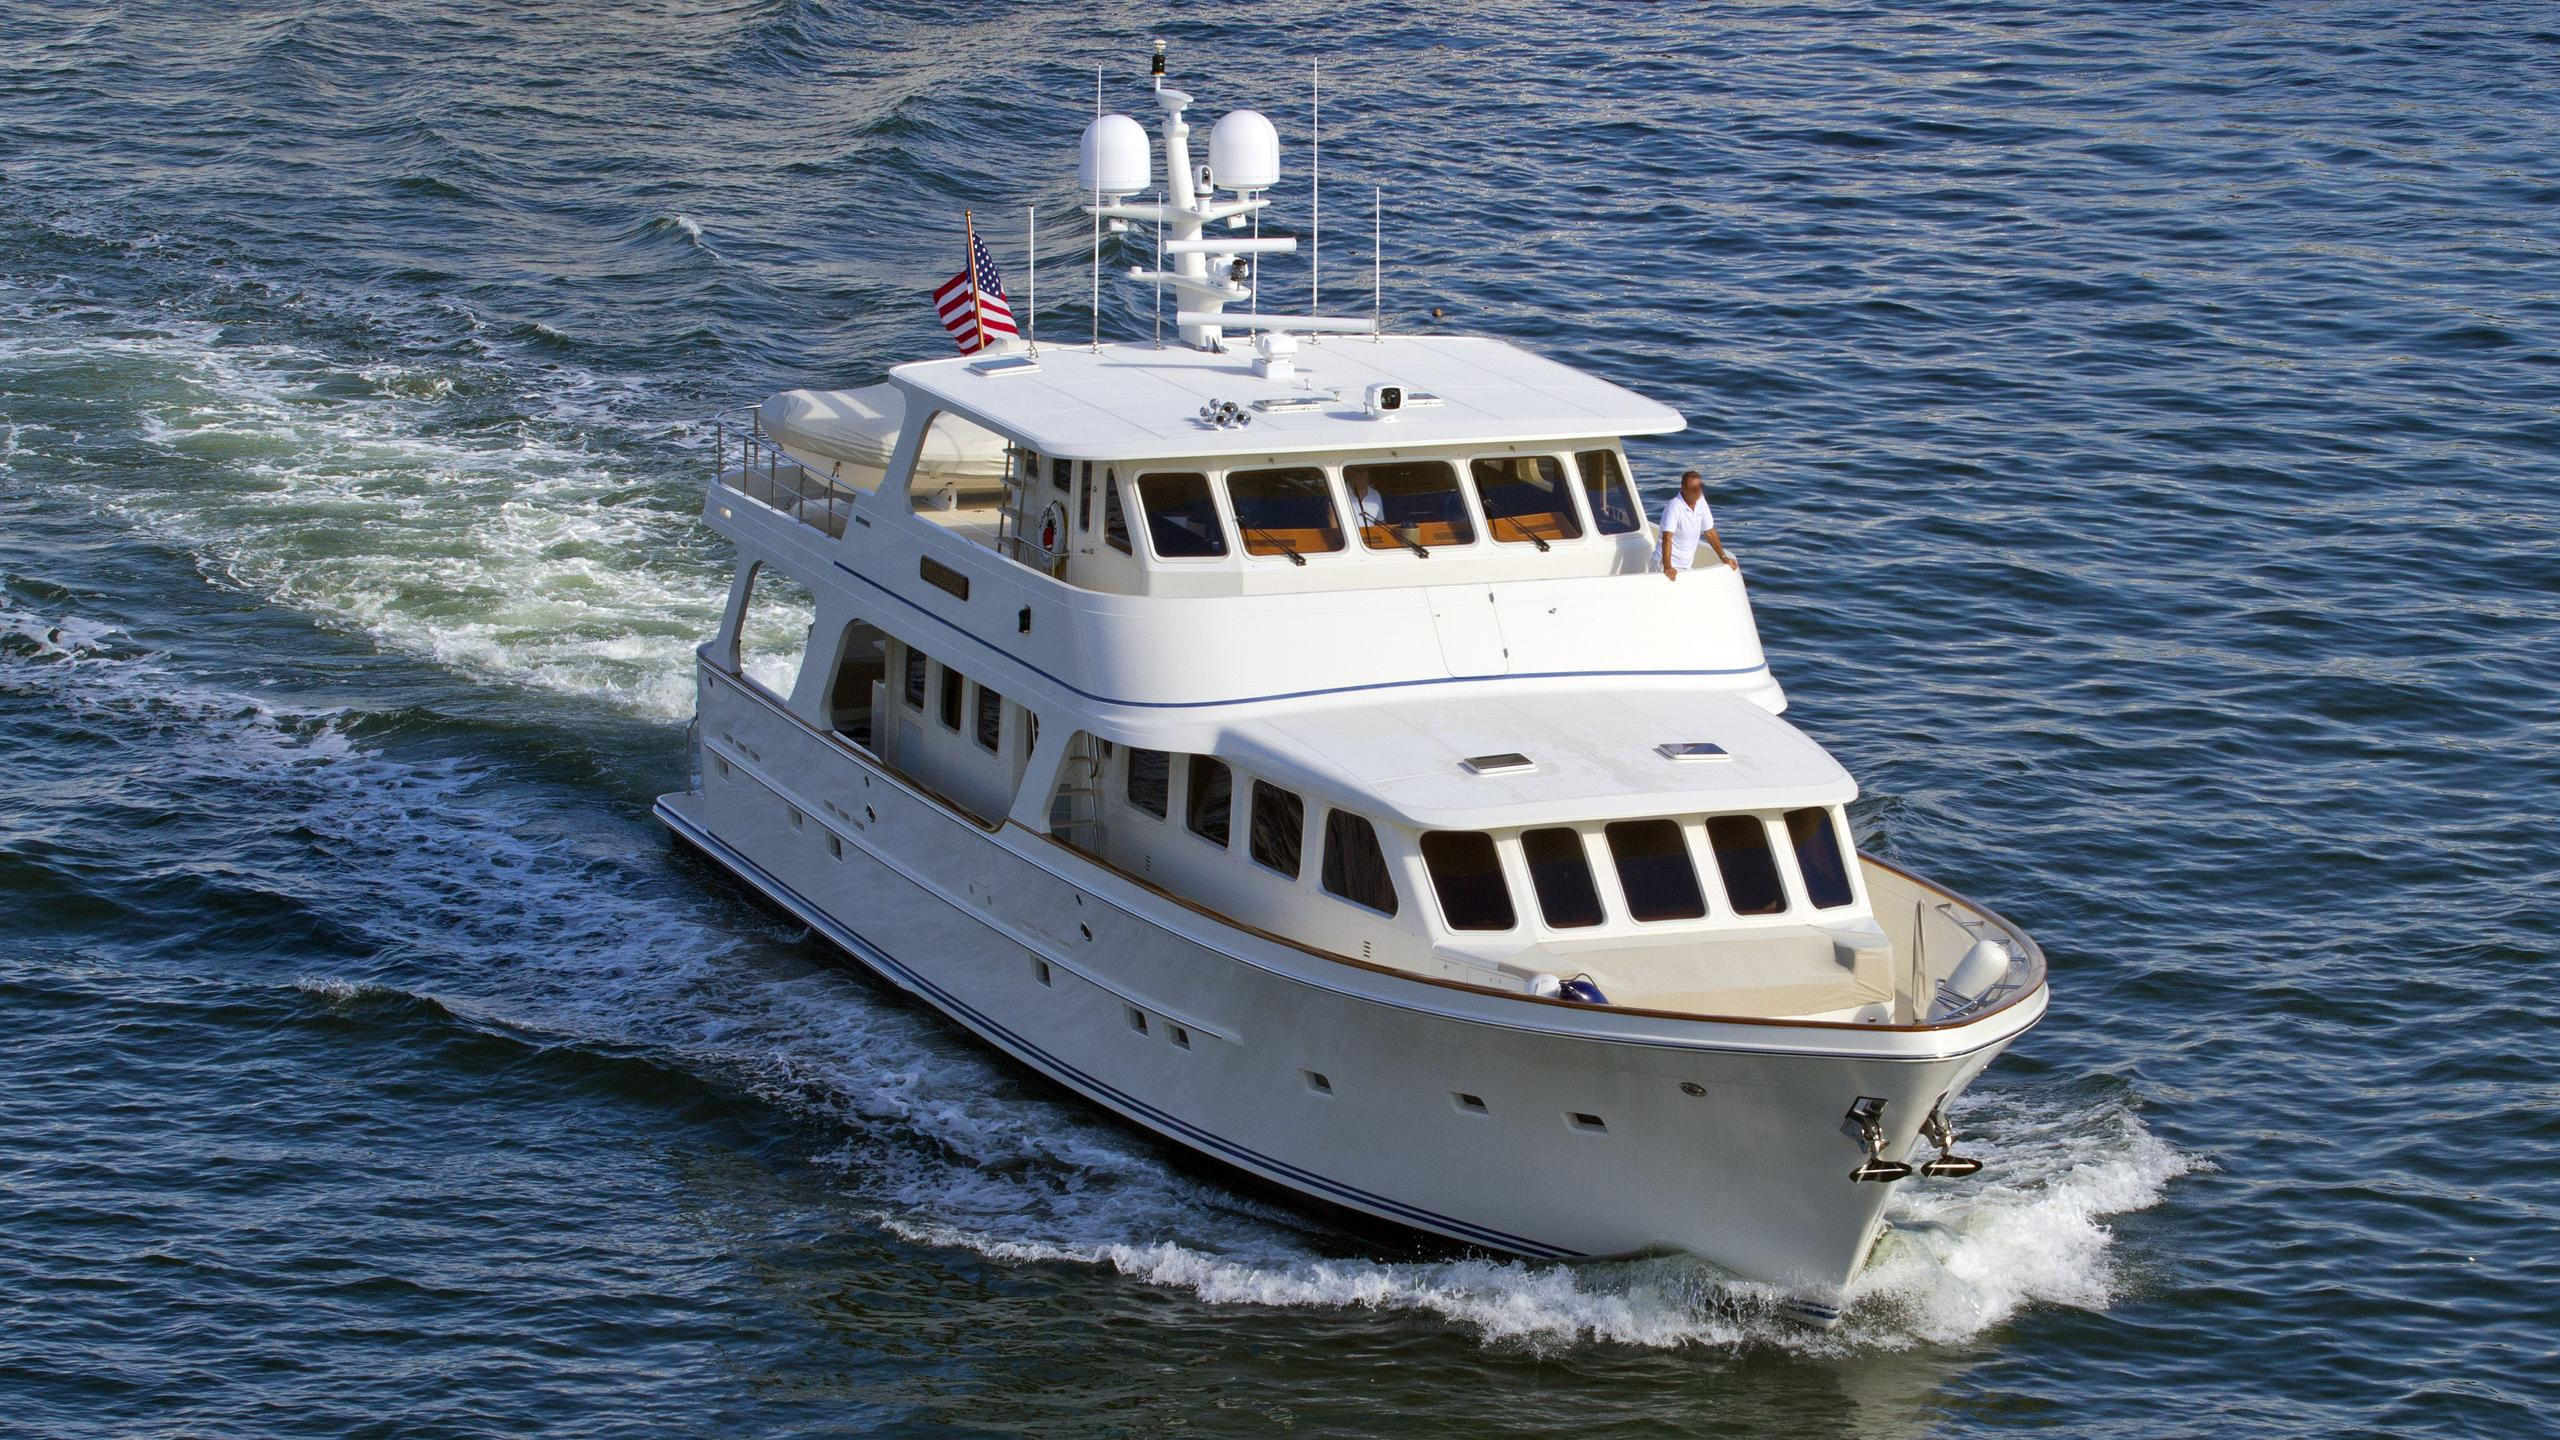 nordfjord-motor-yacht-Offshore-Voyager-80-2003-25m-aerial